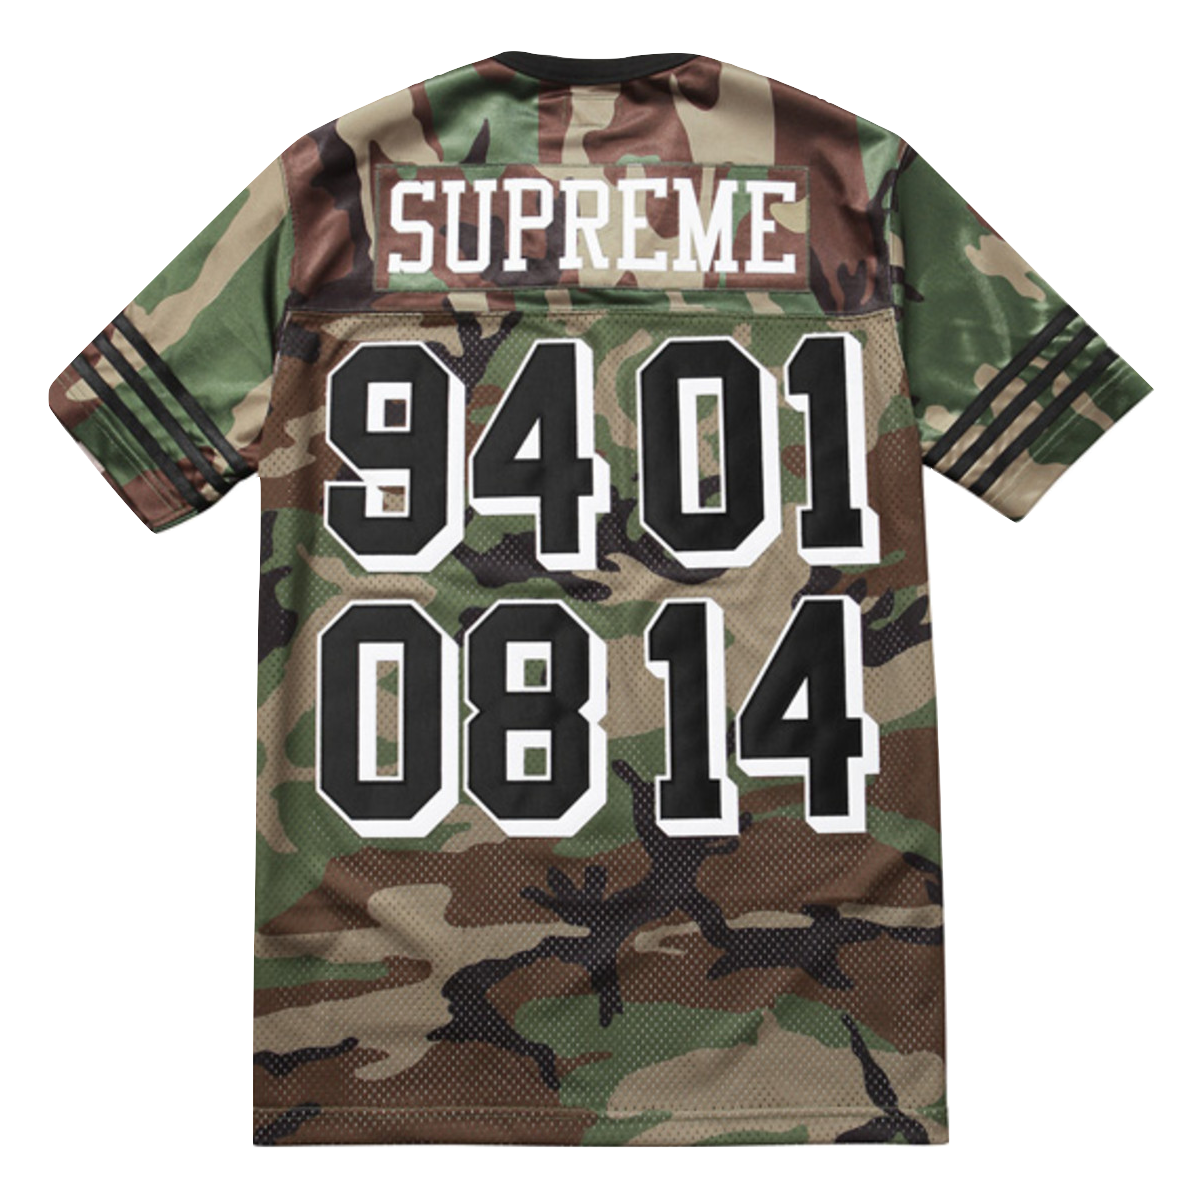 Supreme Championship Football Top - Camo